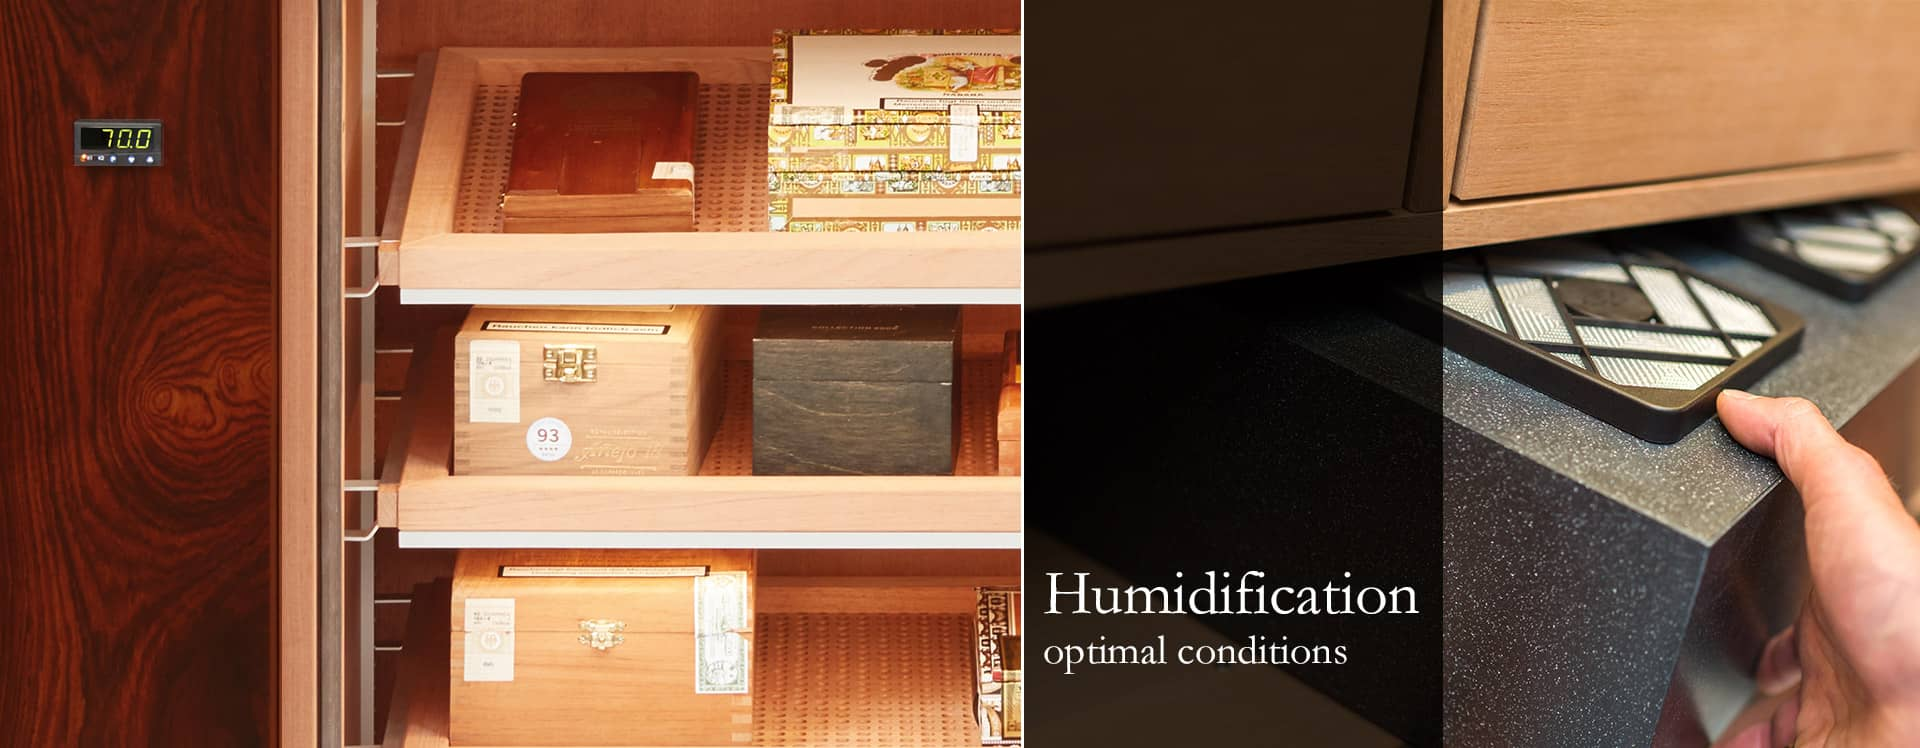 Humidification Gerber Humidor